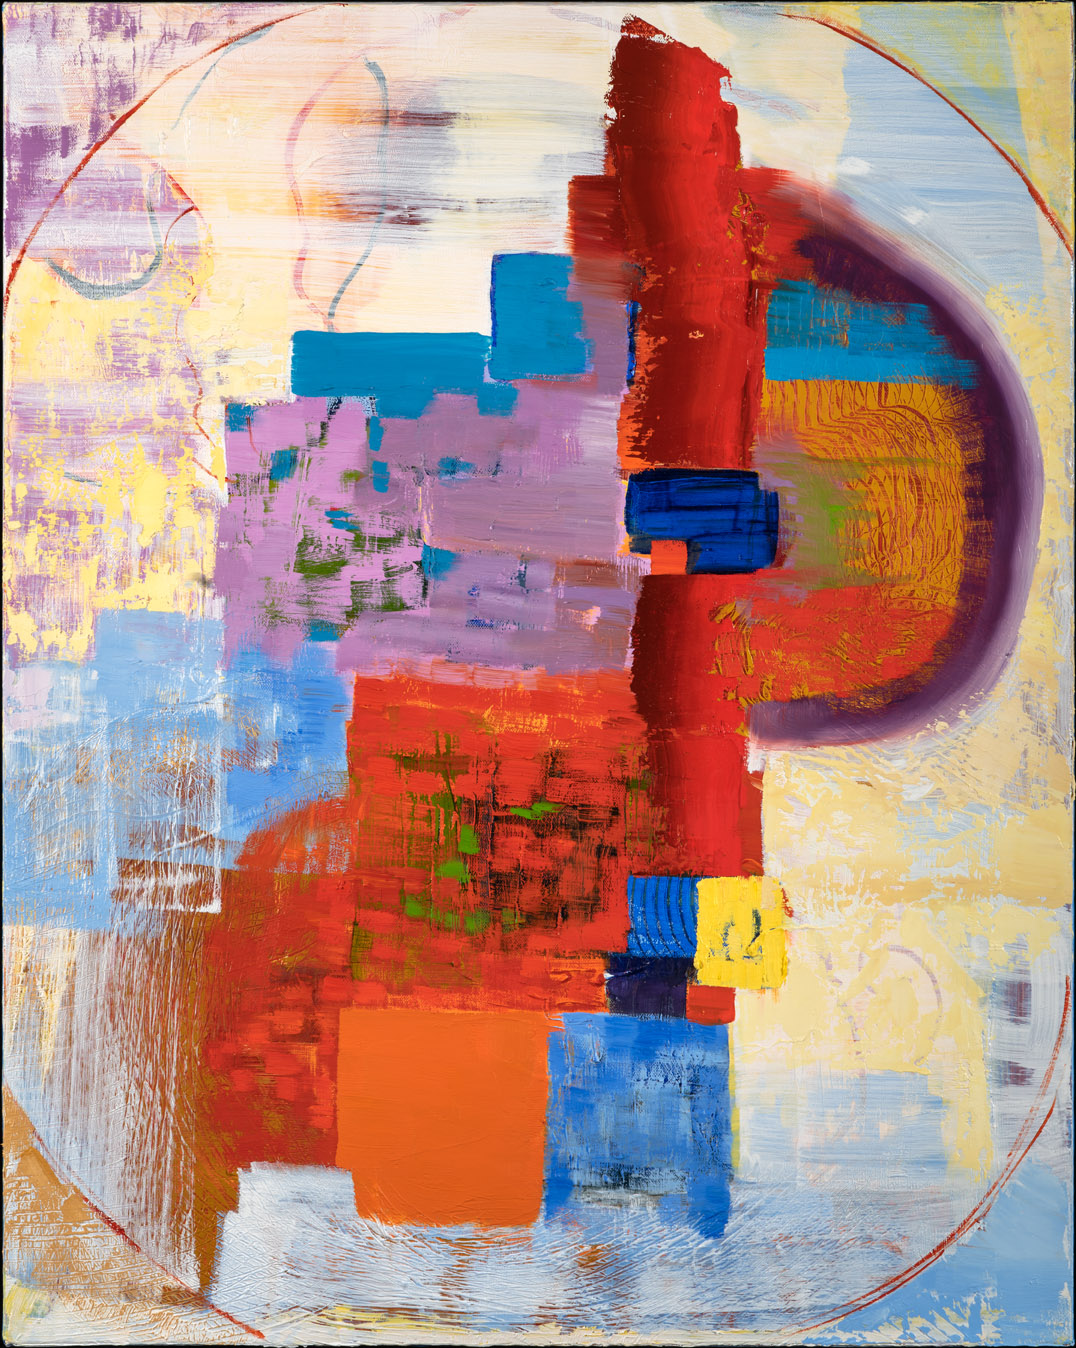 Odyssey - oil acrylic painting by Artist Irwin E Thompson